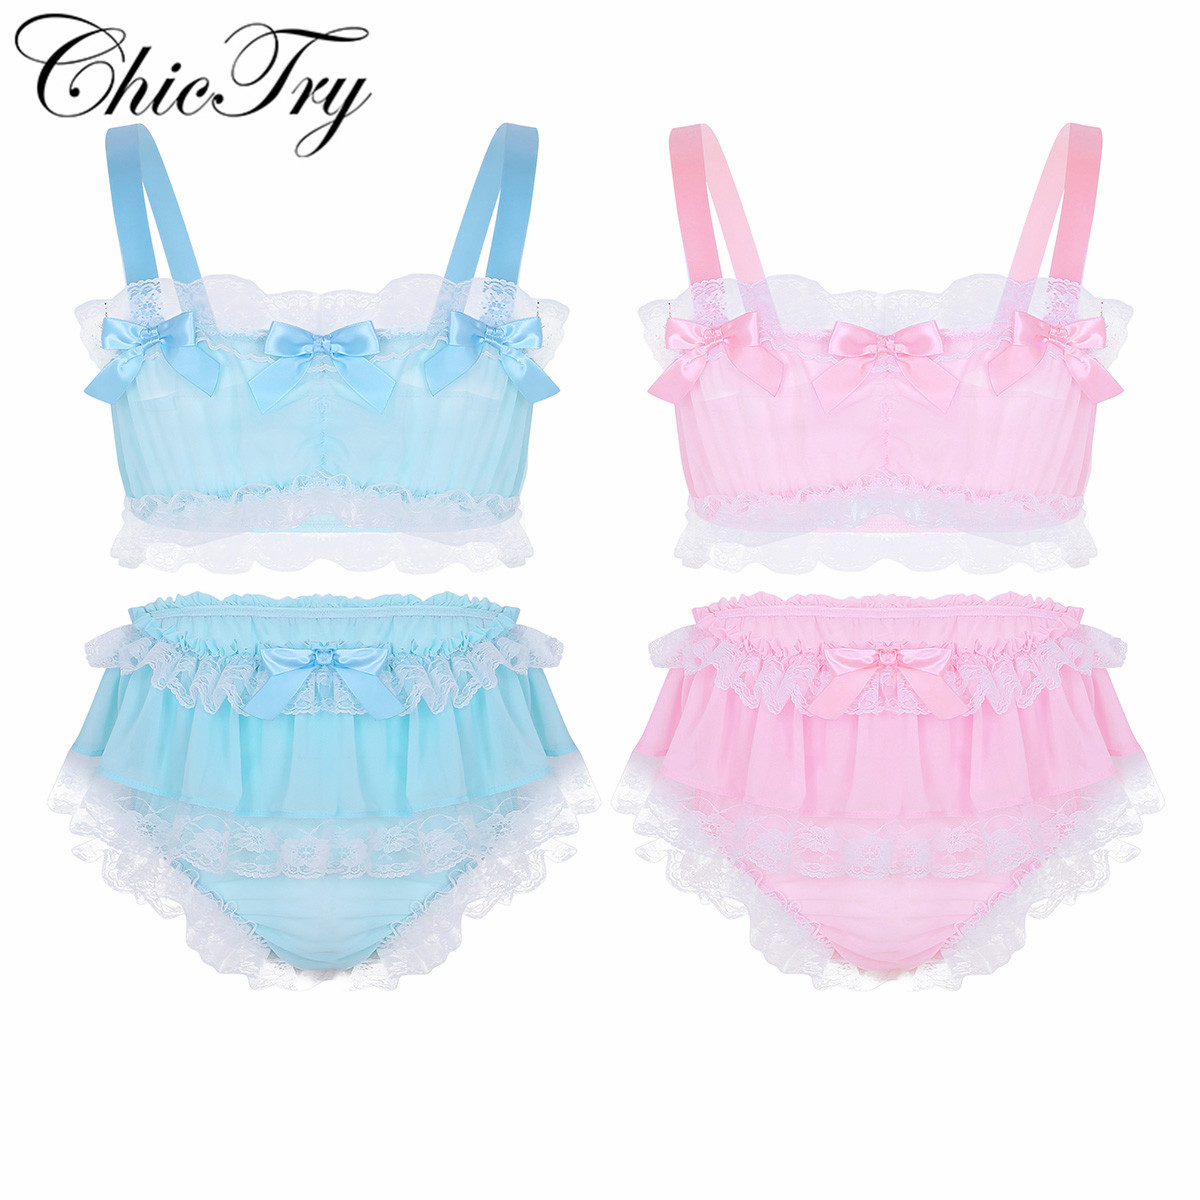 Gay Male Sexy Sissy Set Men Ruffled Lace Chiffon Lingerie Set Sleeveless Crop Top with Skirted Petticoated Panties for Nightwear